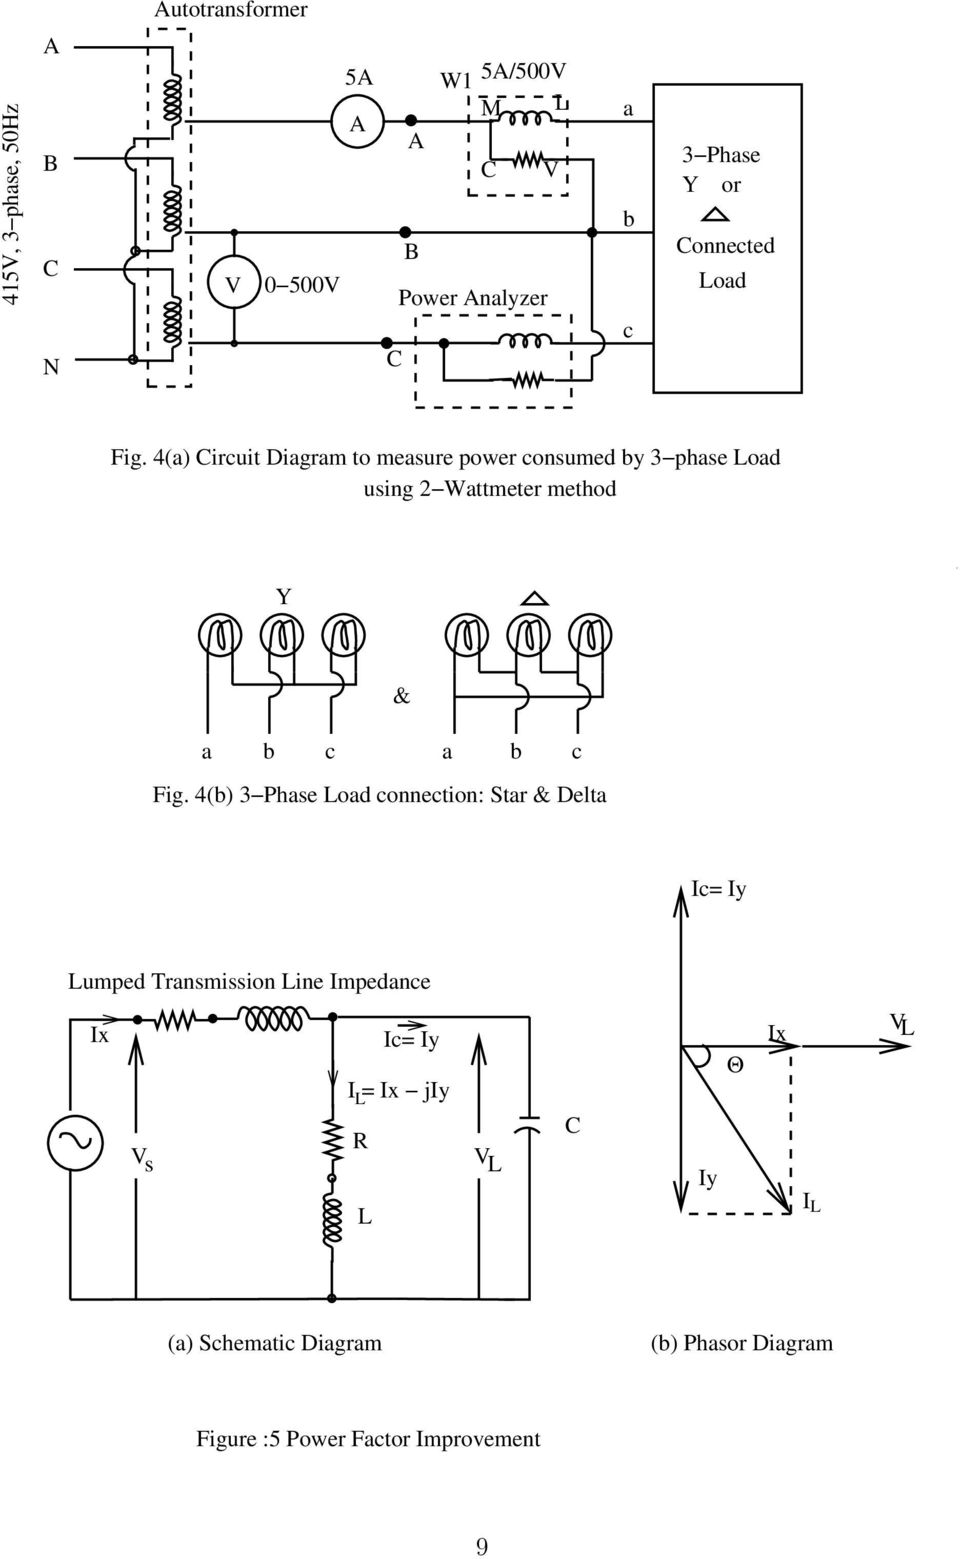 hight resolution of 4 a circuit diagram to measure power consumed by 3 phase load using wattmeter